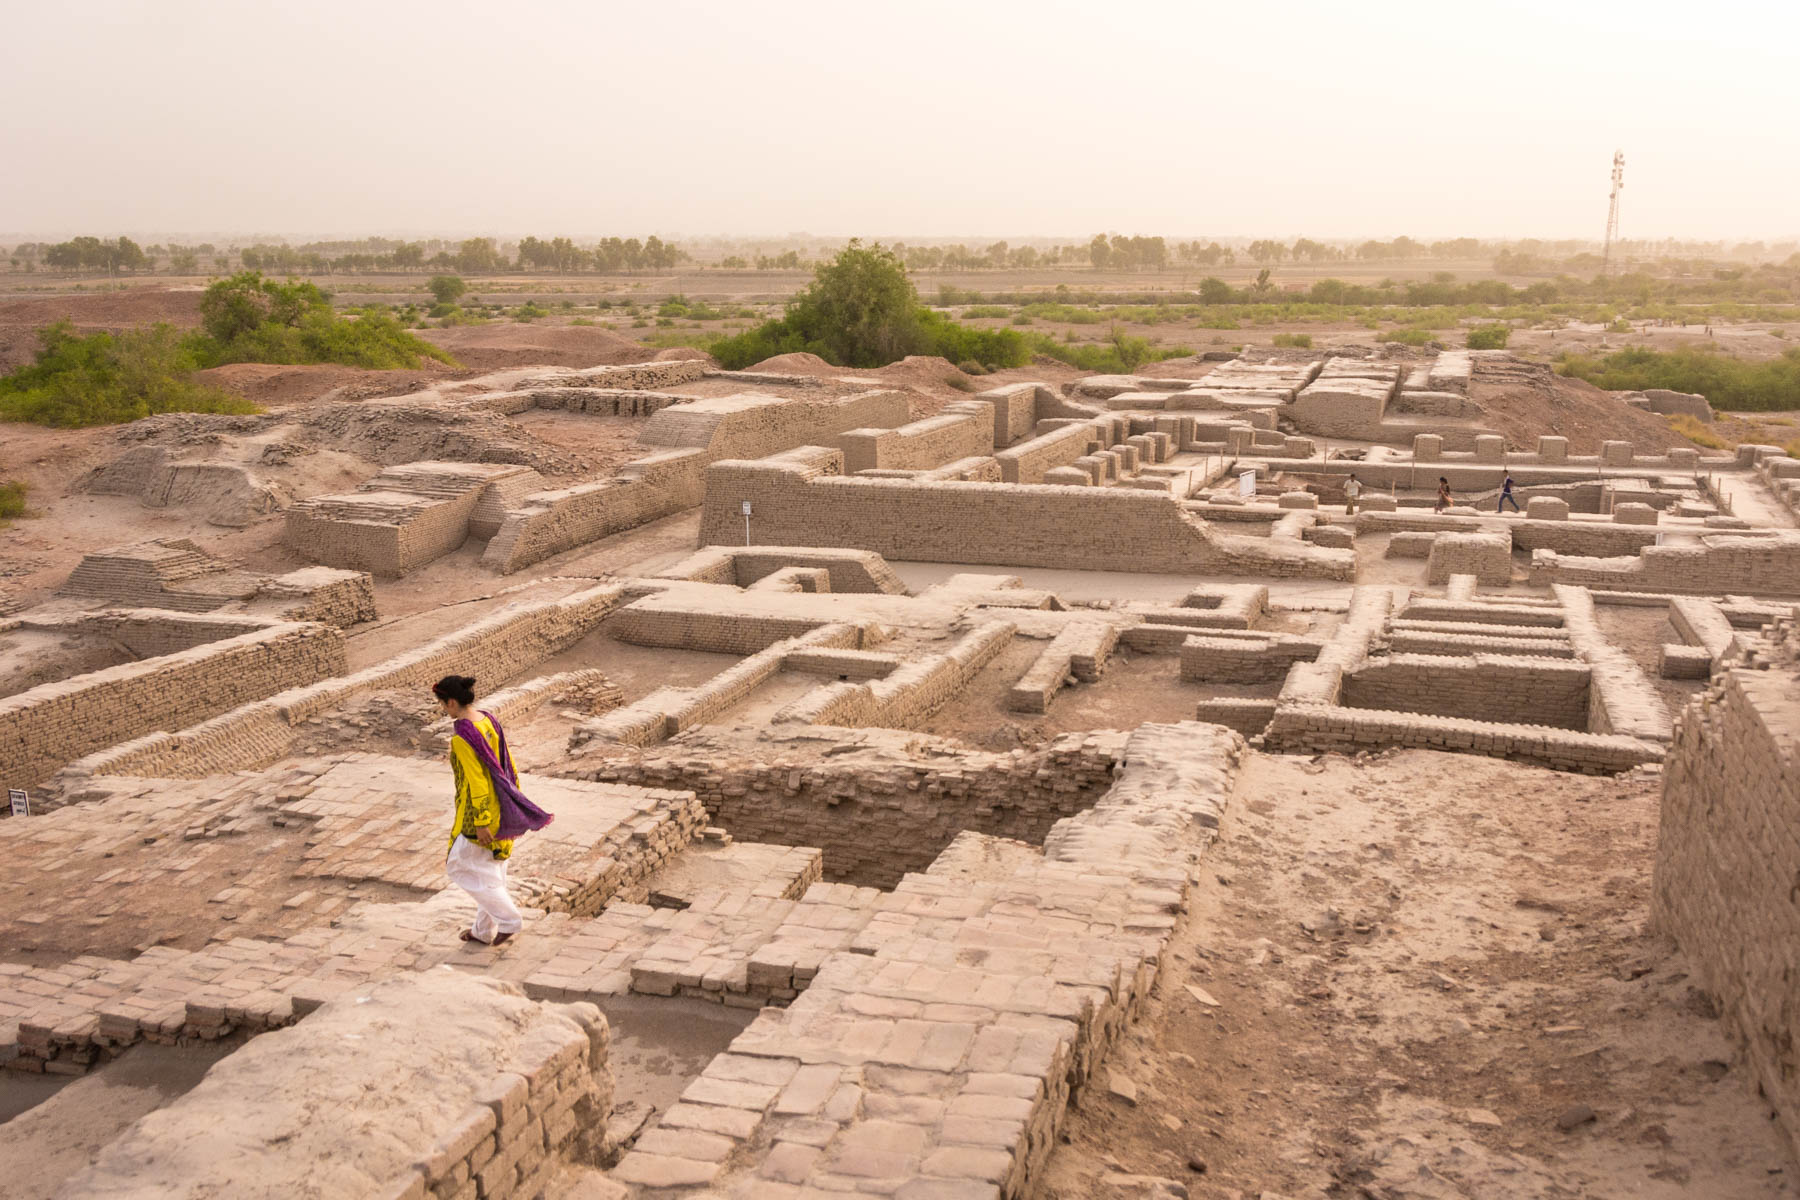 Pakistan bucket list - Girl exploring Moenjodaro ruins in Sindh - Lost With Purpose travel blog